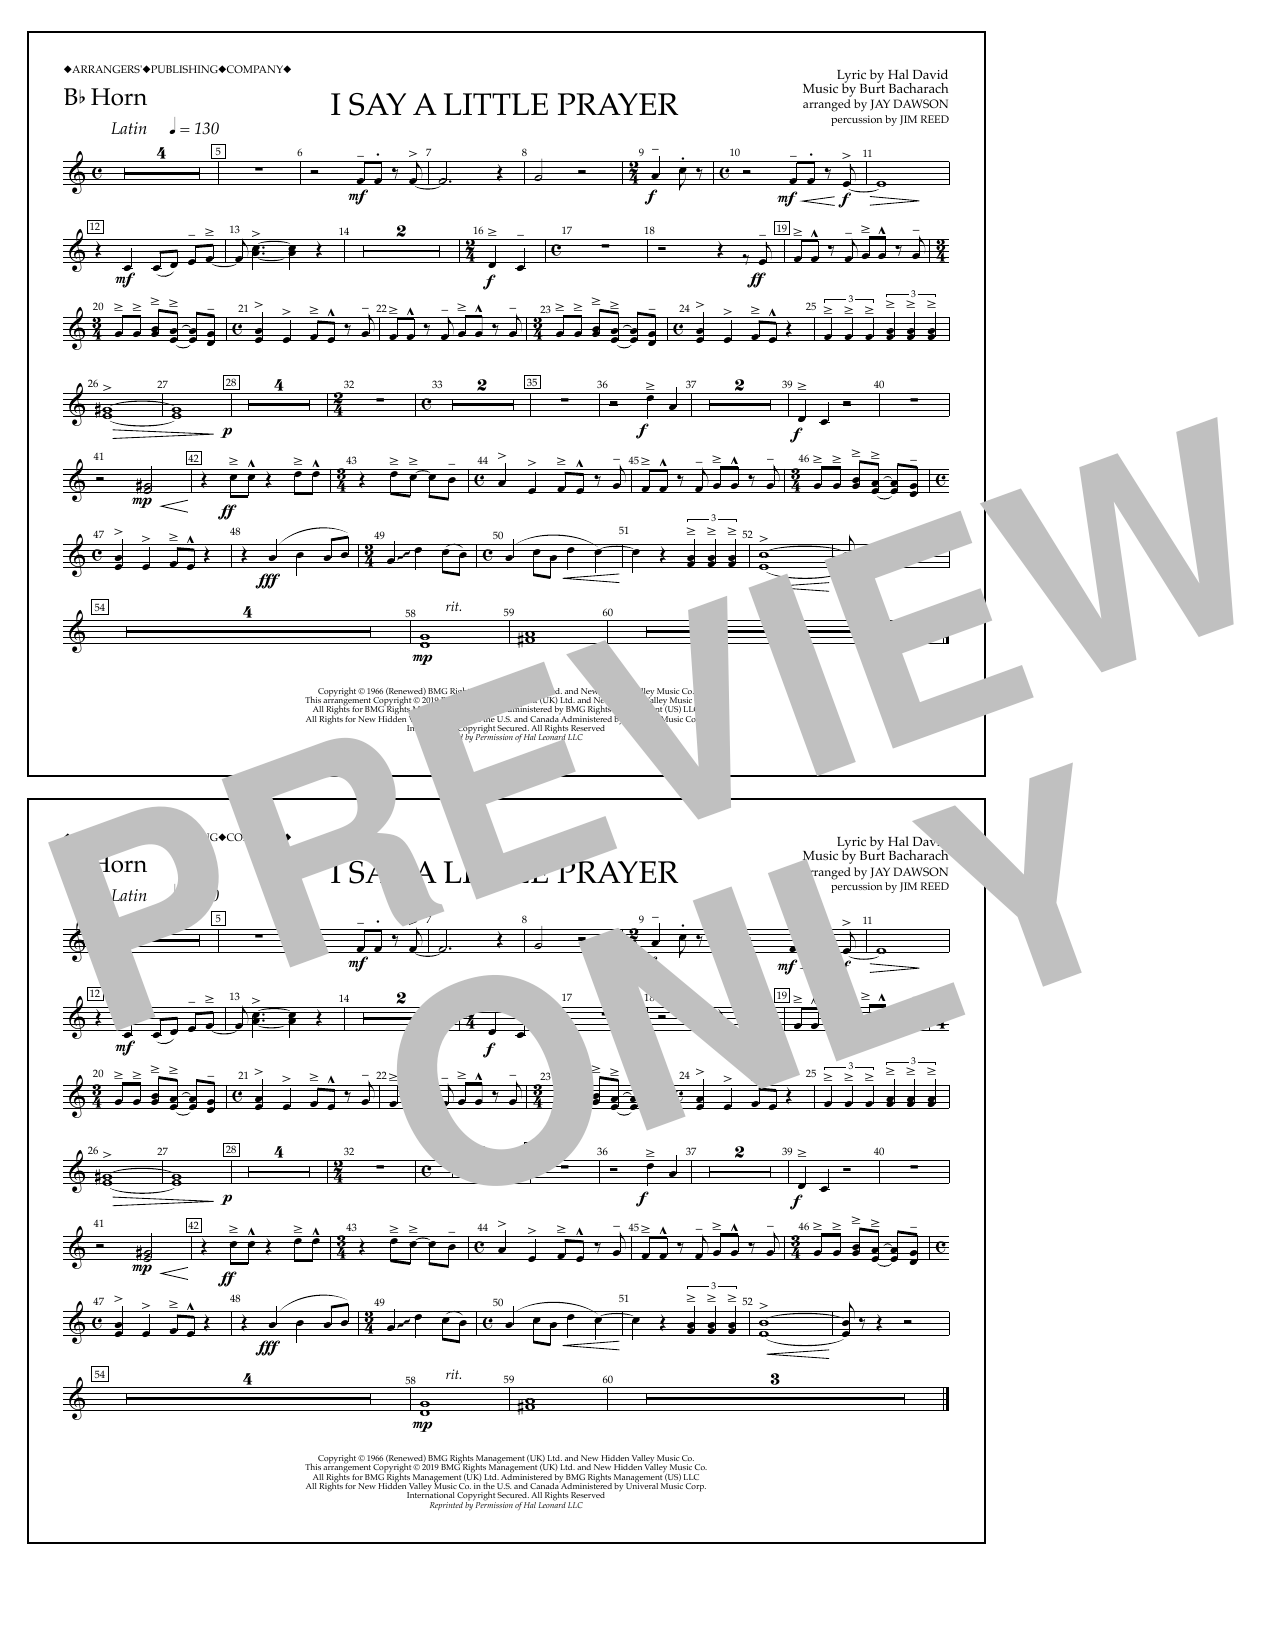 Aretha Franklin I Say a Little Prayer (arr. Jay Dawson) - Bb Horn sheet music notes and chords